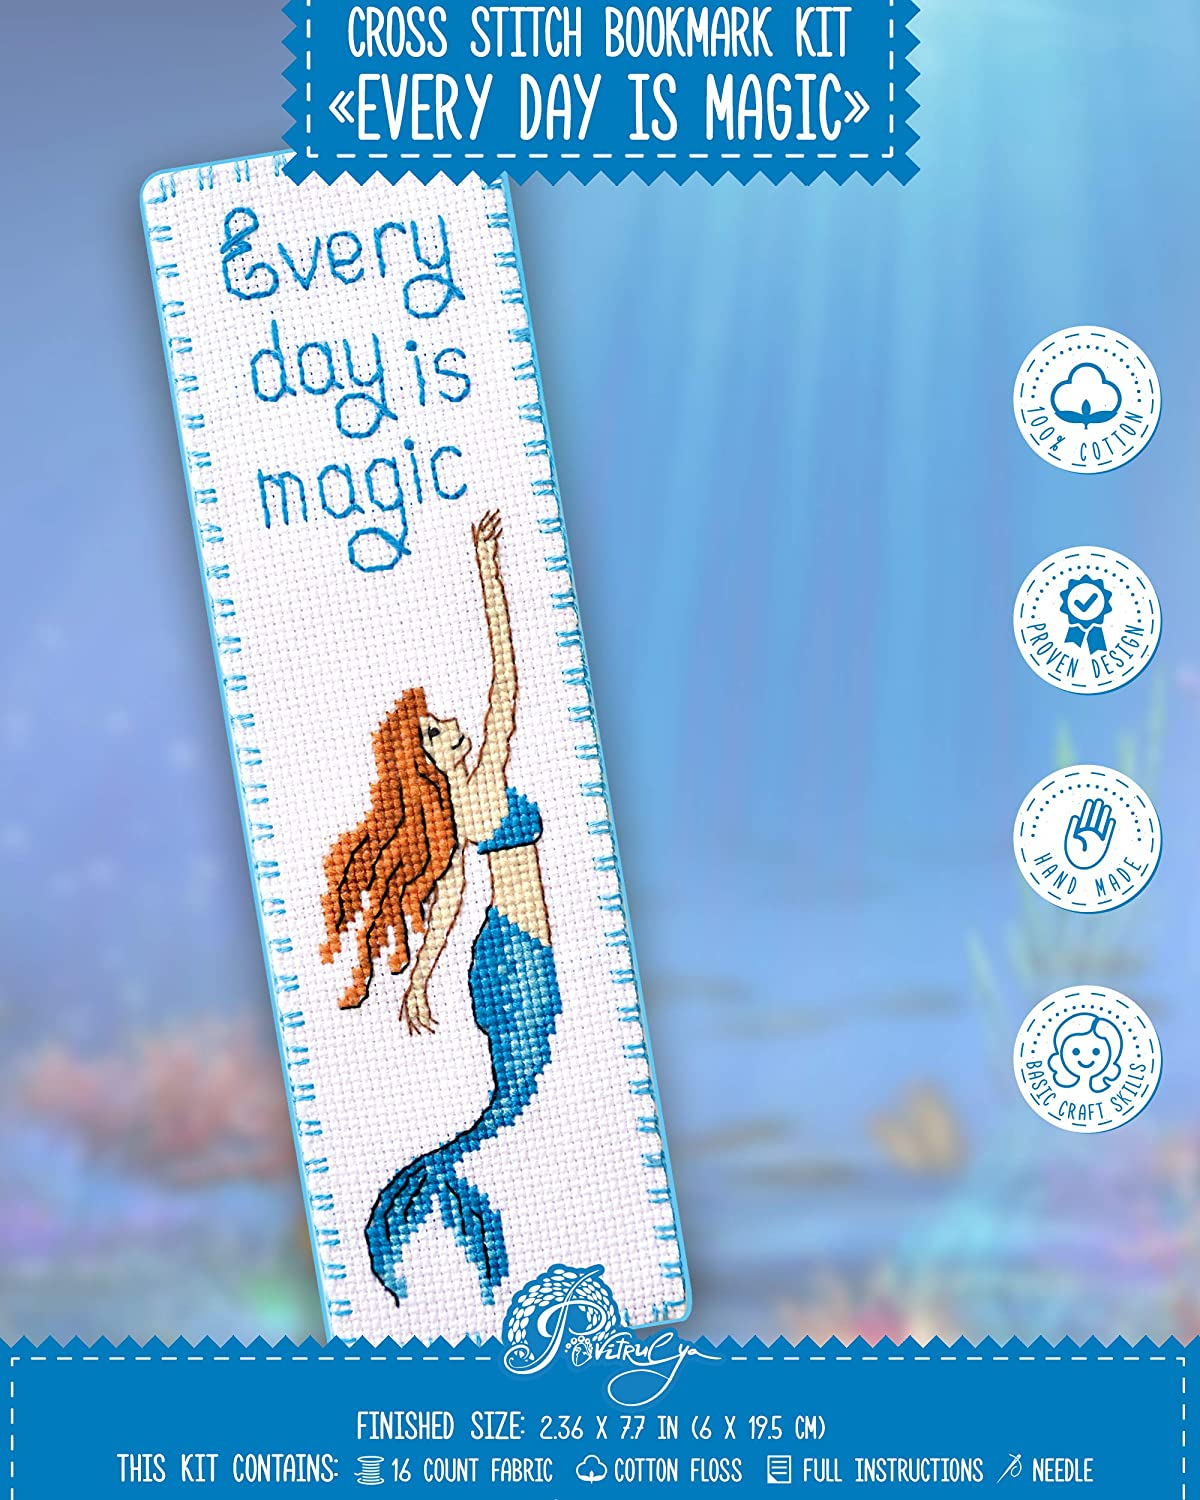 Counted Cross Stitch Bookmark Kit Mermaid - Every Day is Magic for Hand Embroidery